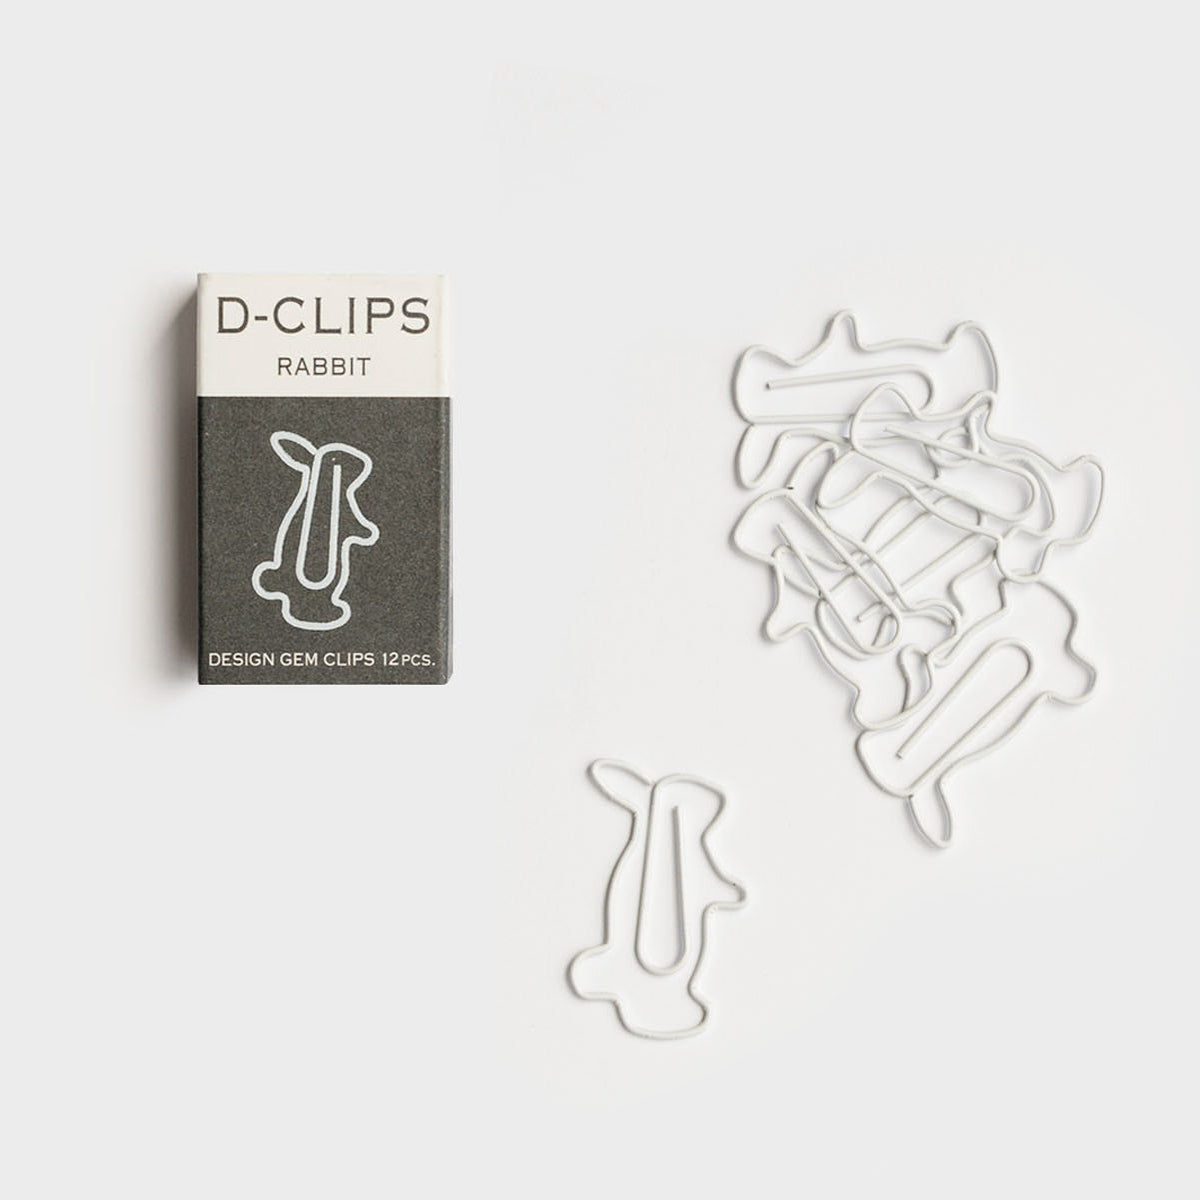 D-CLIPS MINI // RABBIT